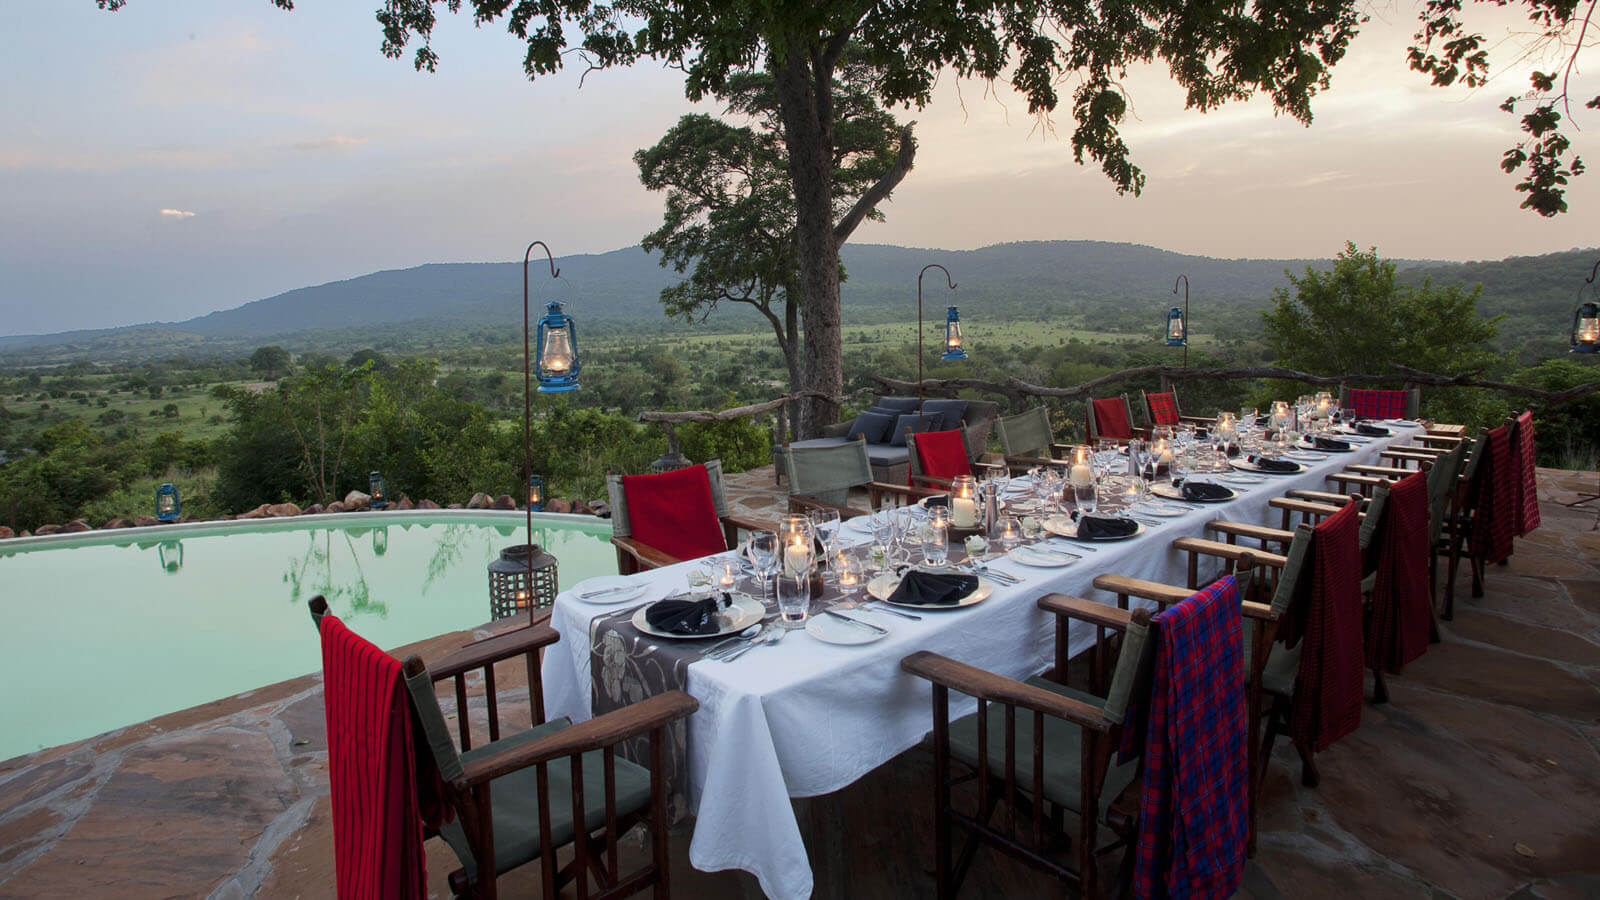 Safari Dining in Tanzania